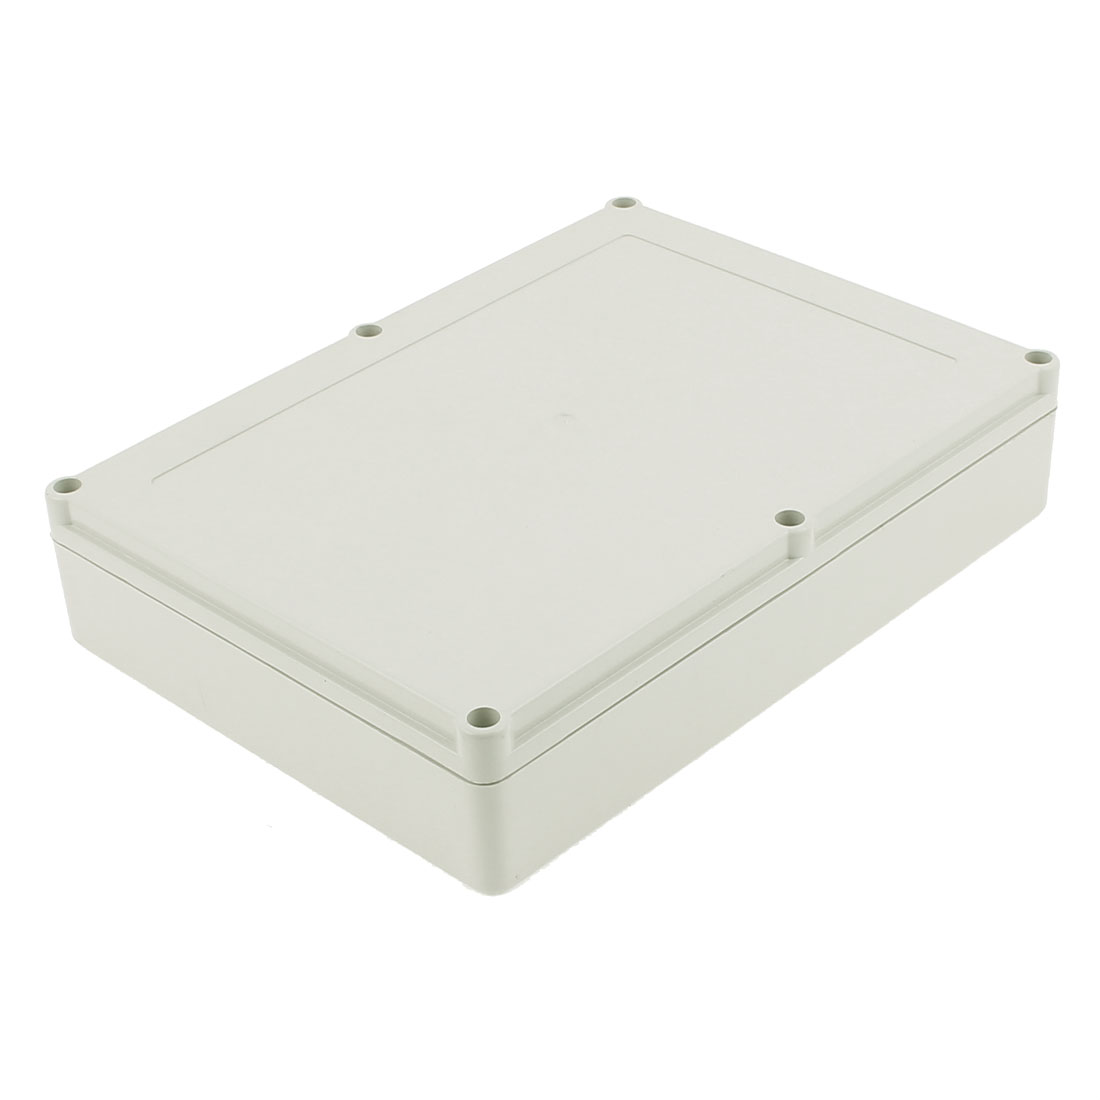 240 x 175 x 50mm Dustproof IP65 Junction Box Terminal Connecting Box Enclosure